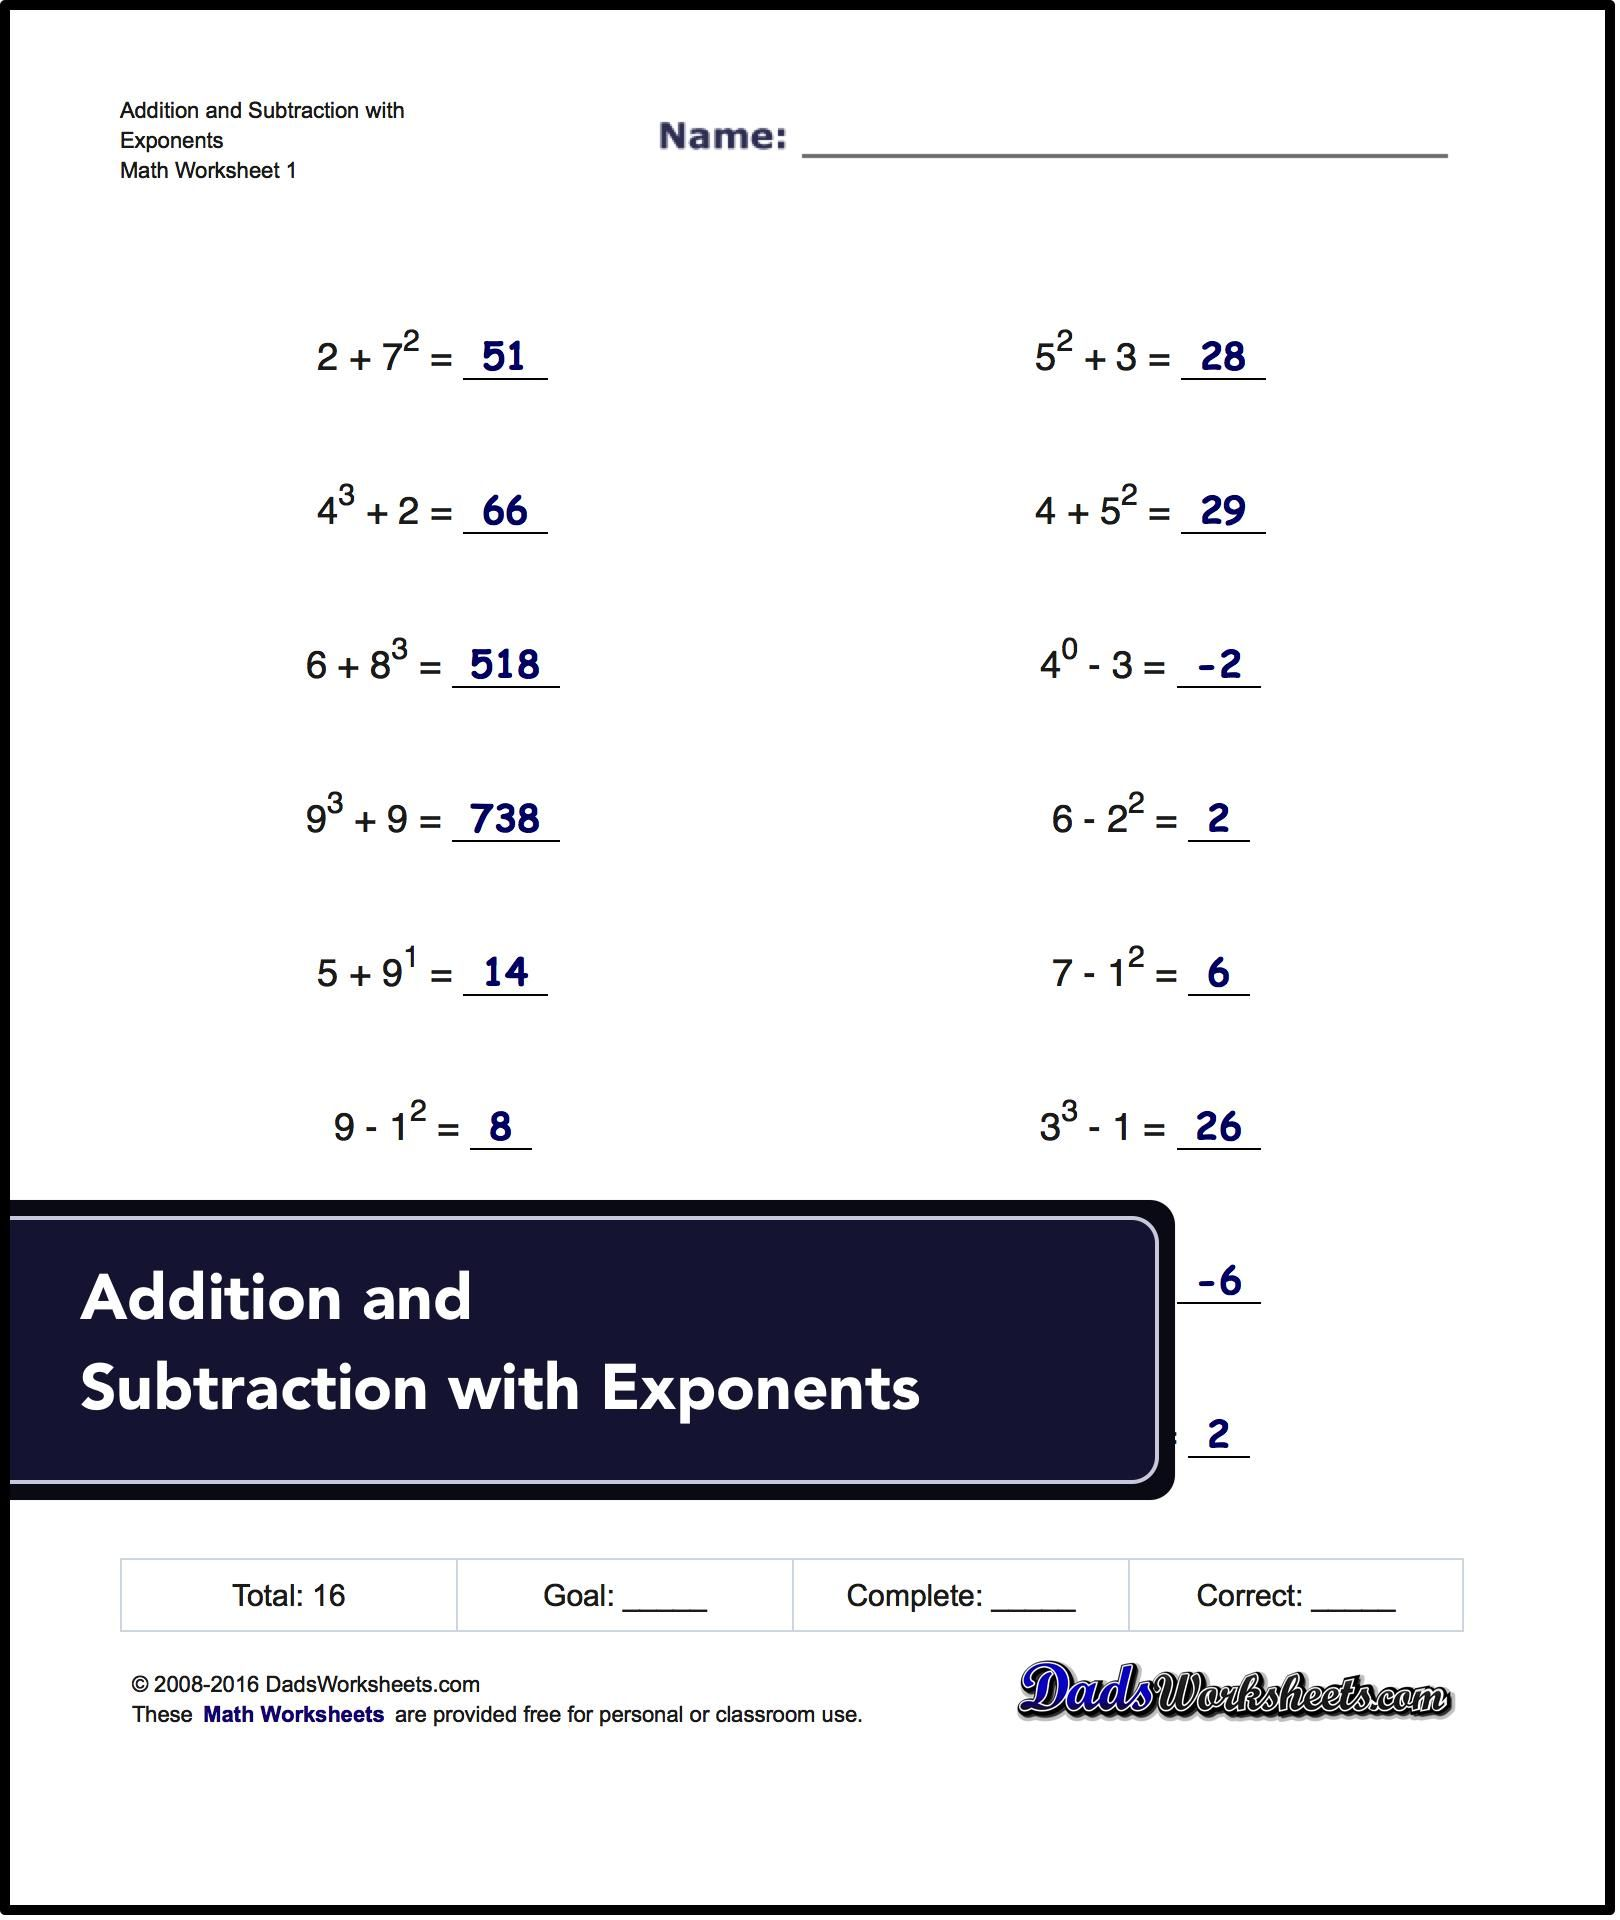 Exponents Worksheets Mixed Addition And Subtraction With Exponents